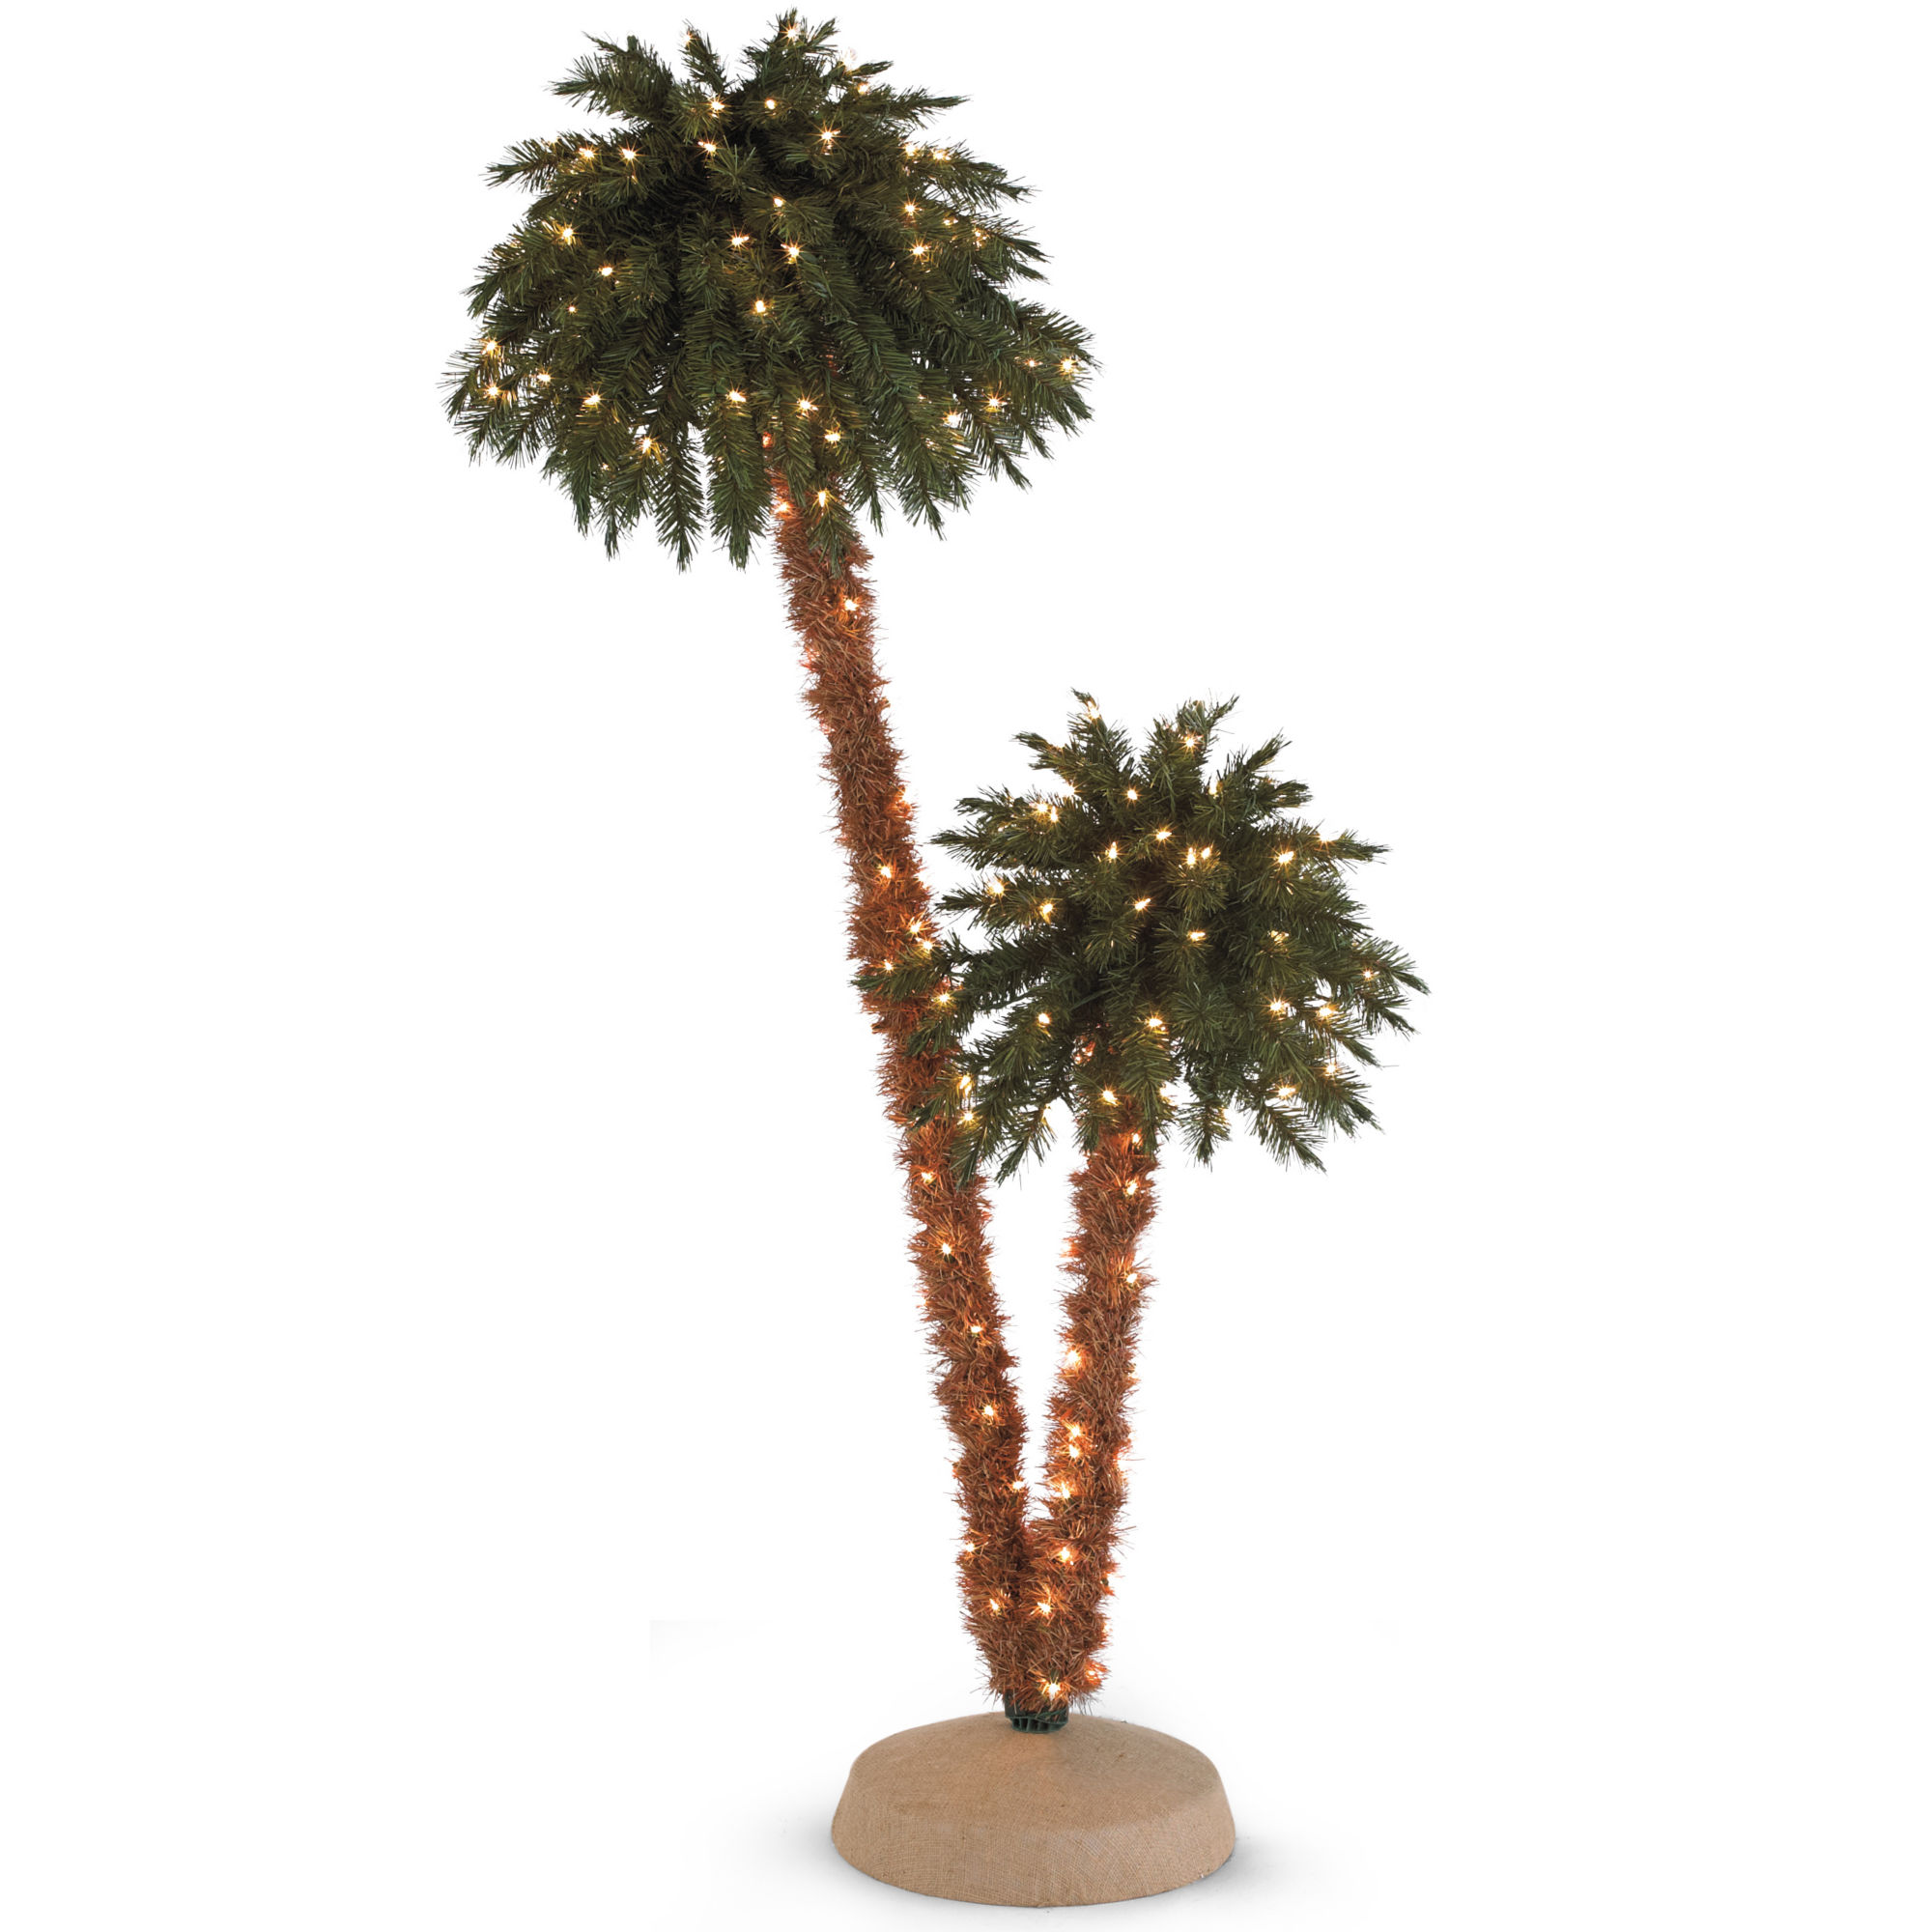 6' Pre-Lit Doubled Headed Palm Christmas Tree